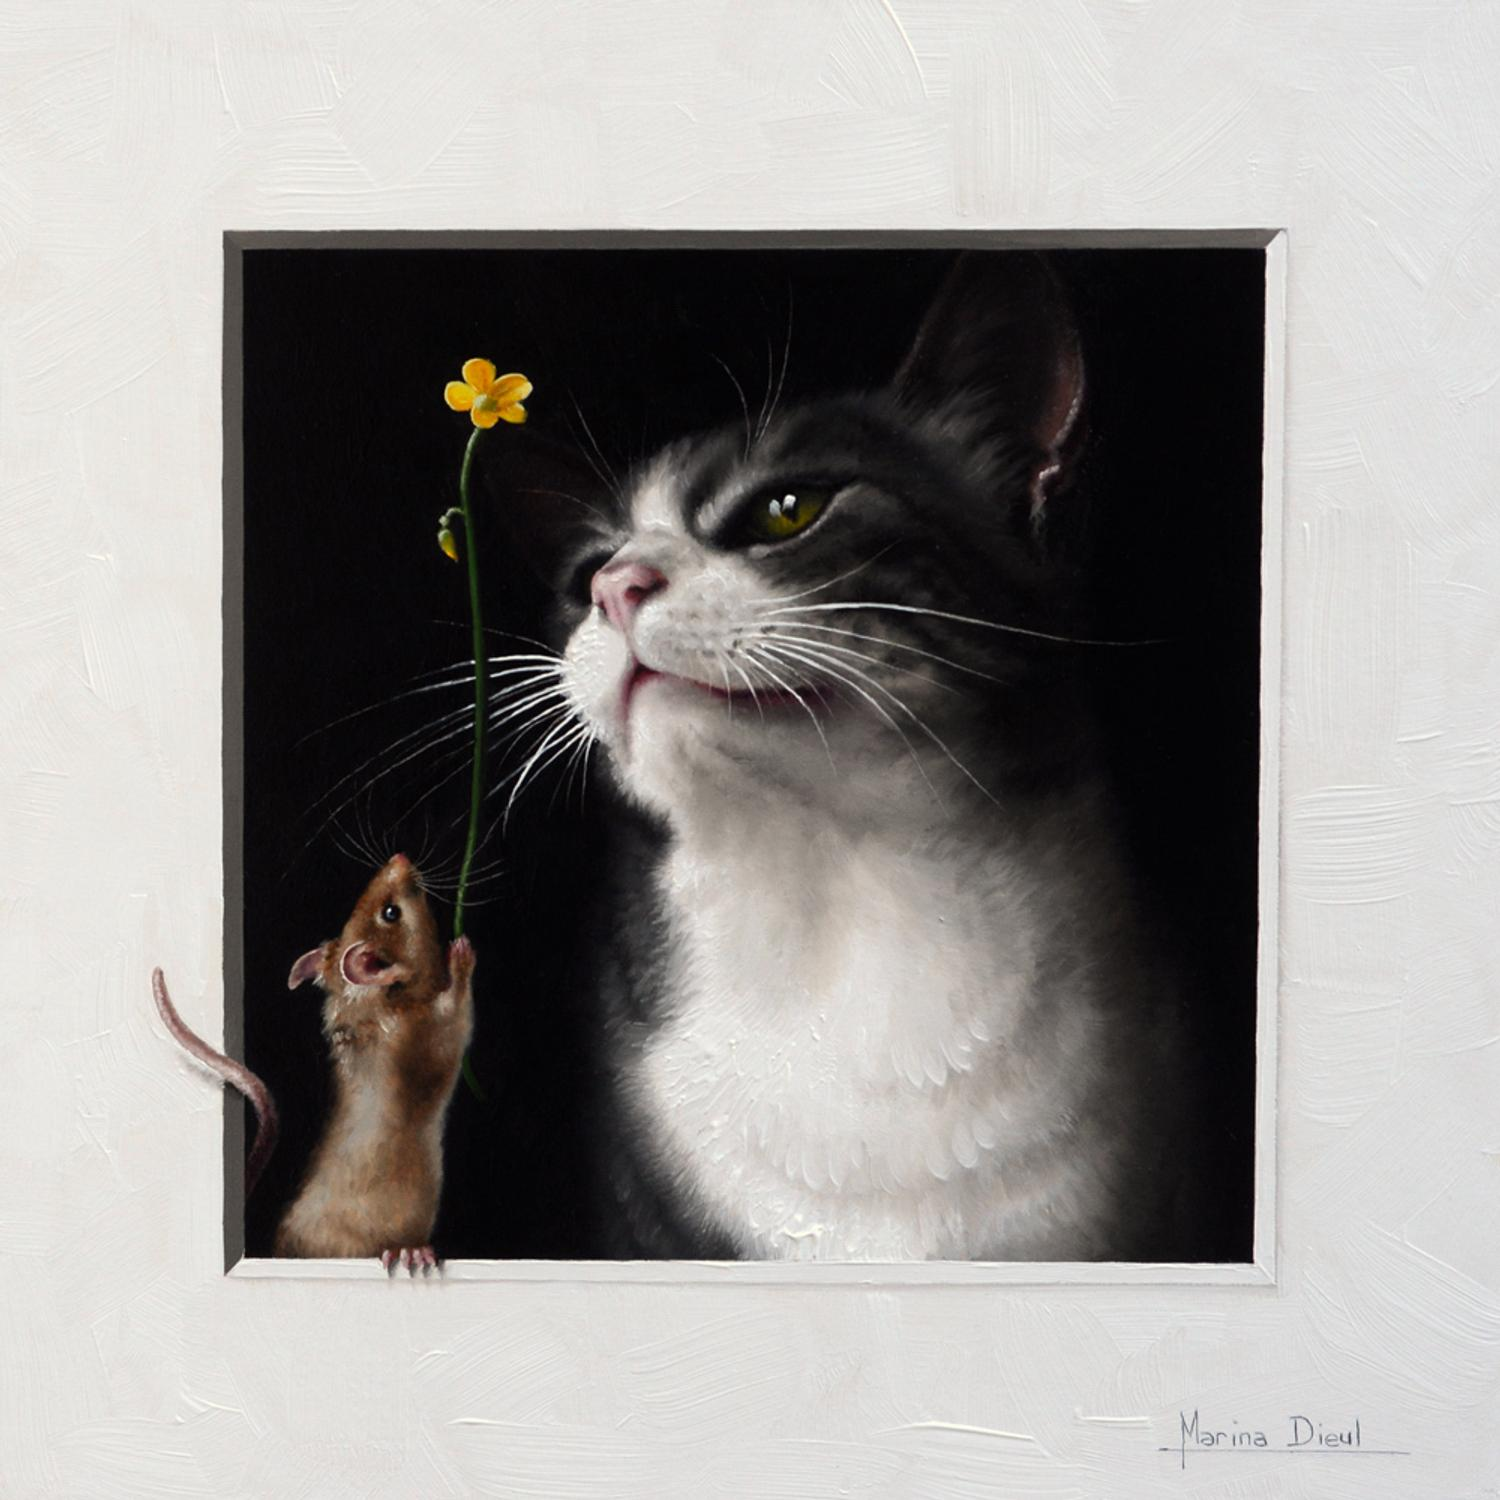 Cat And Mouse New Paintings By Marina Dieul Artwire